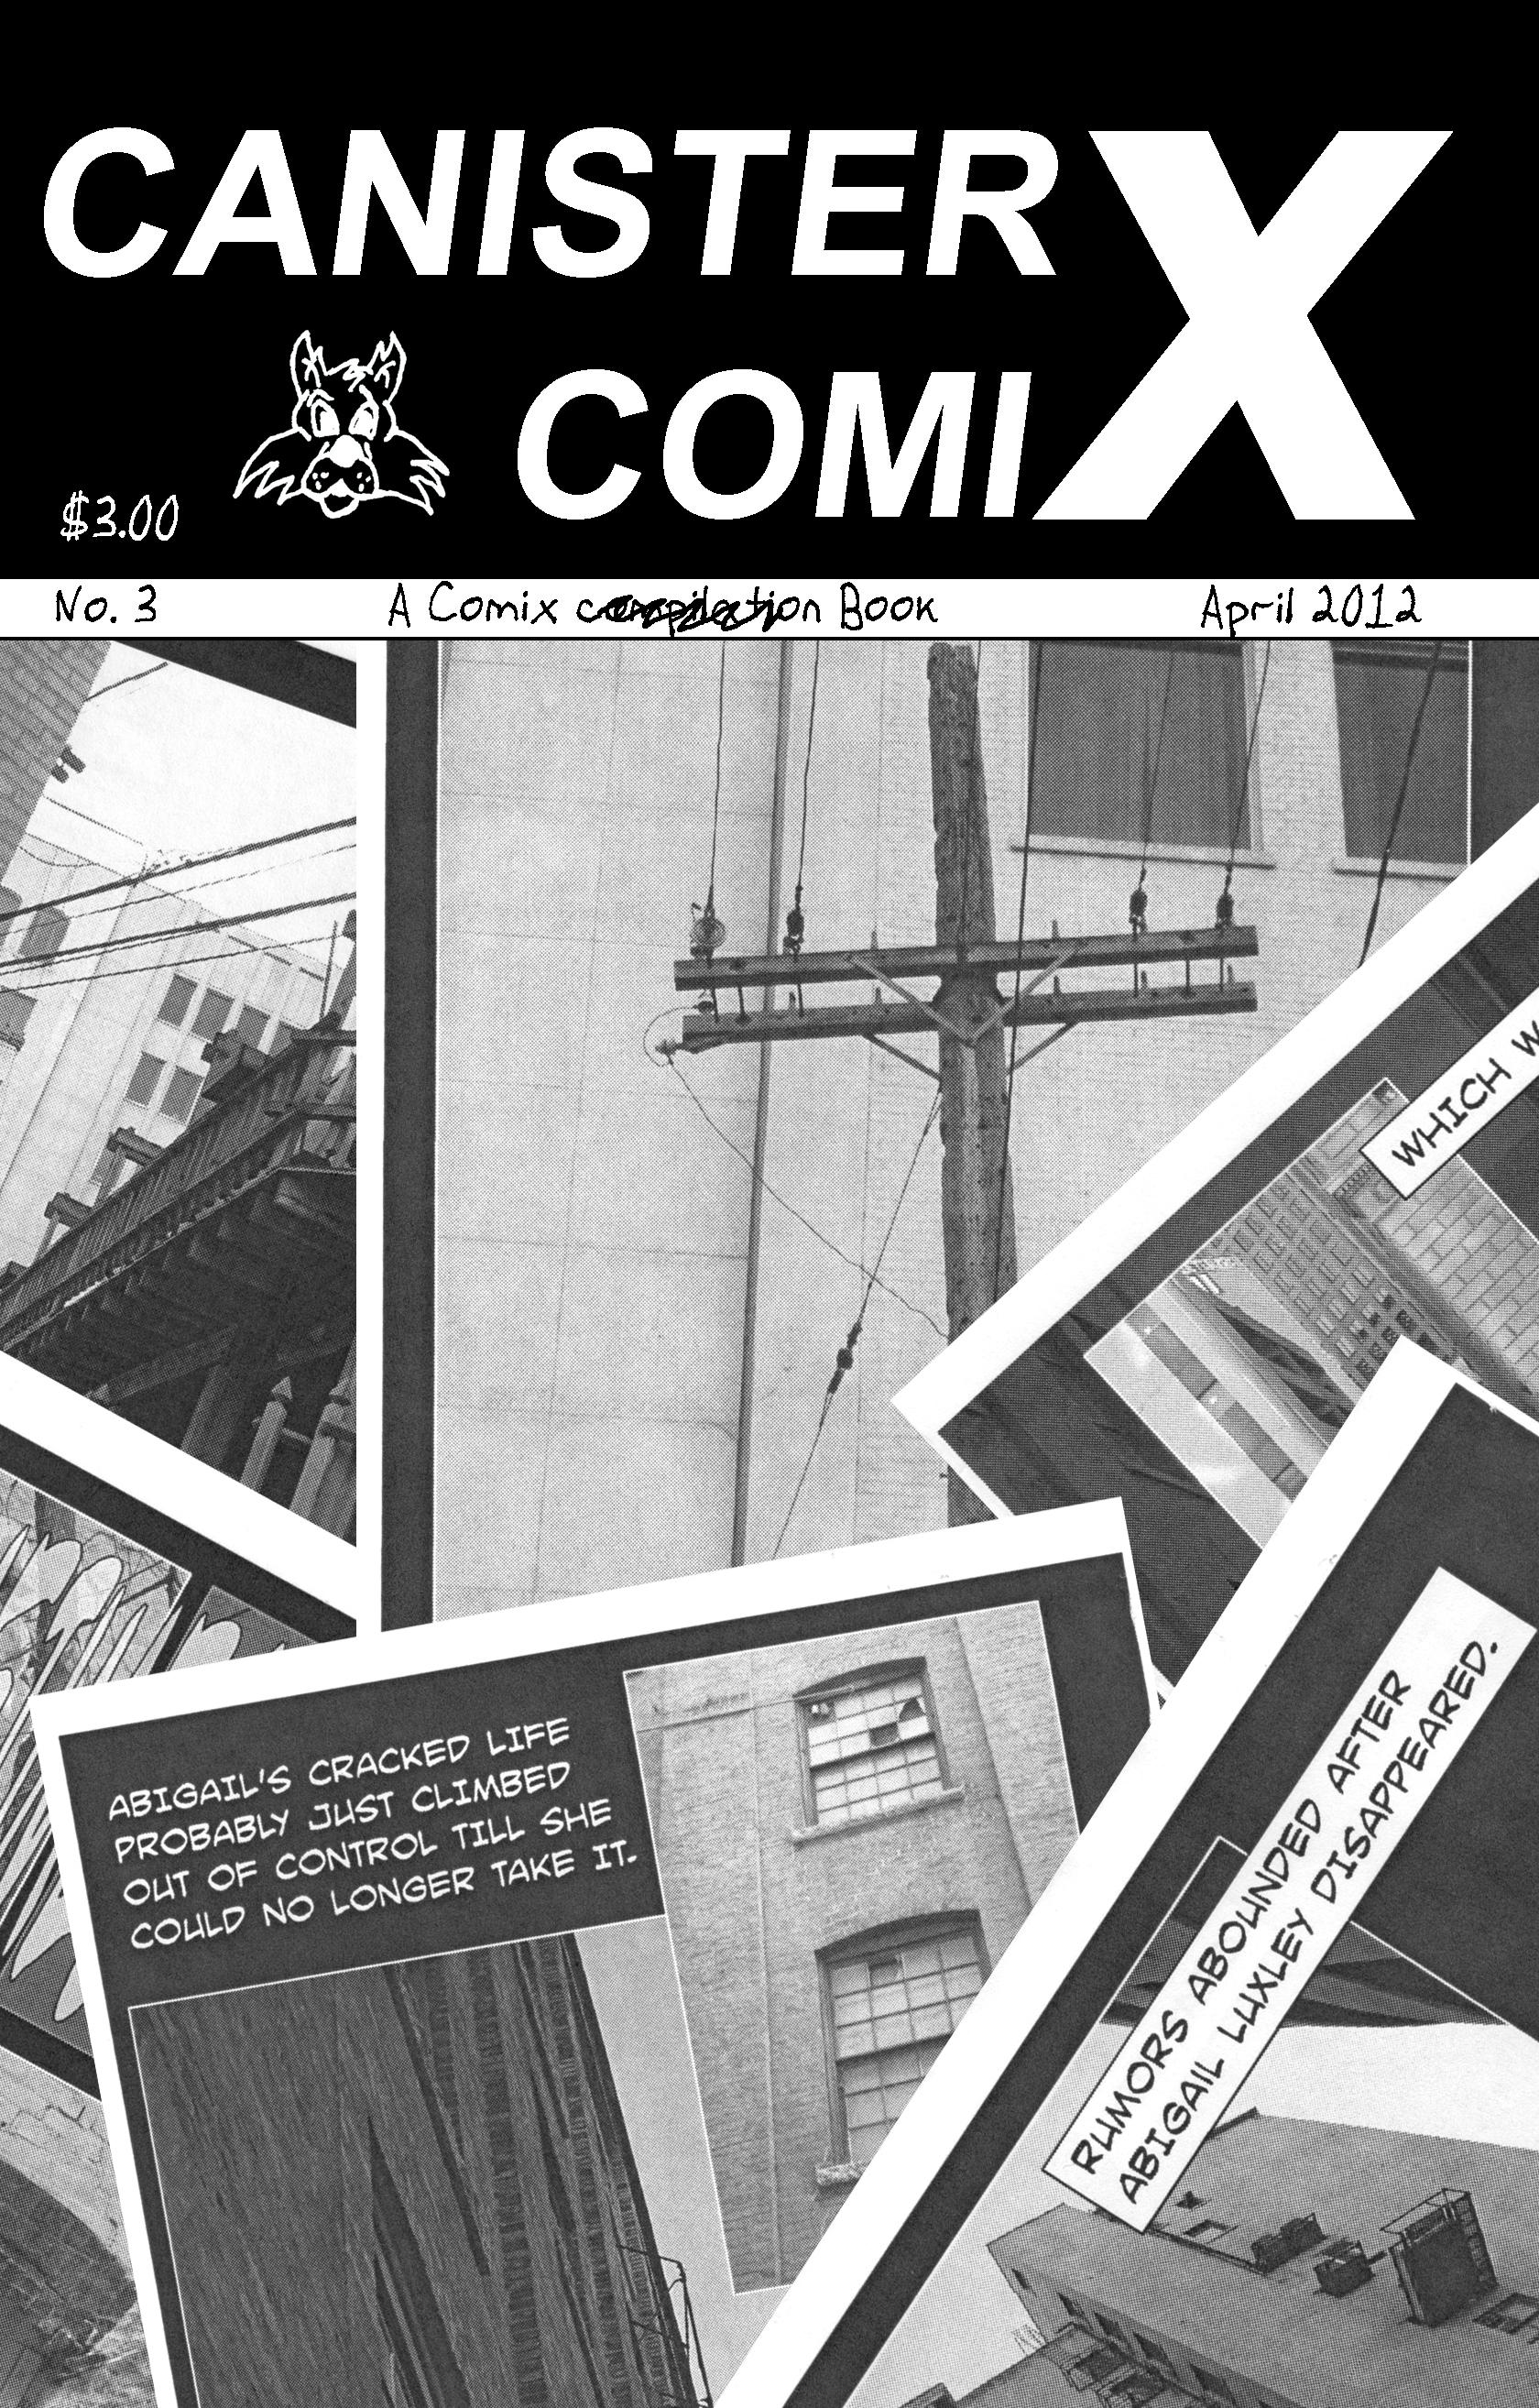 Canister X Comix No. 3 (Comic Book) EB9781926712383